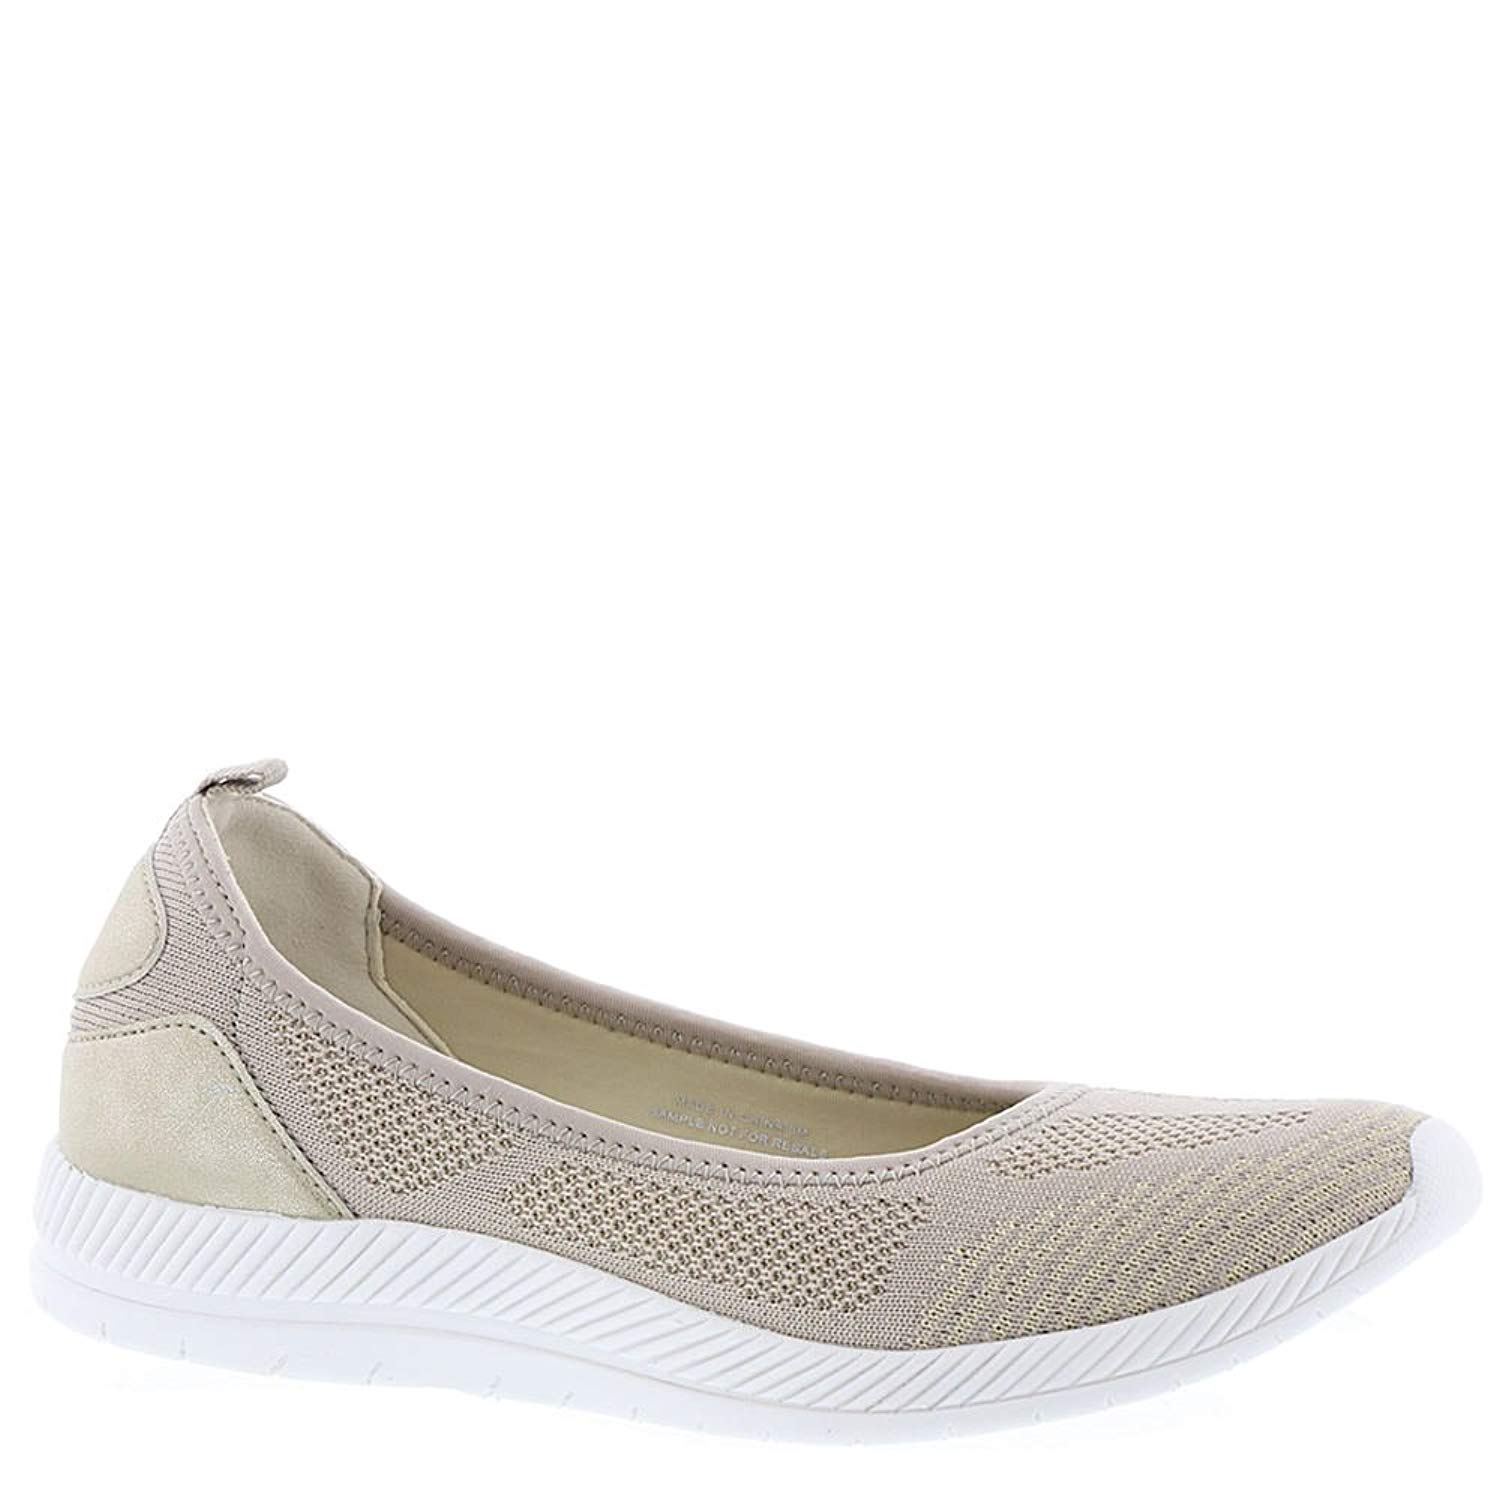 Easy Spirit Womens Geinee Closed Toe Ballet Flats, Shell-taupe, Size 11.0 k3PG